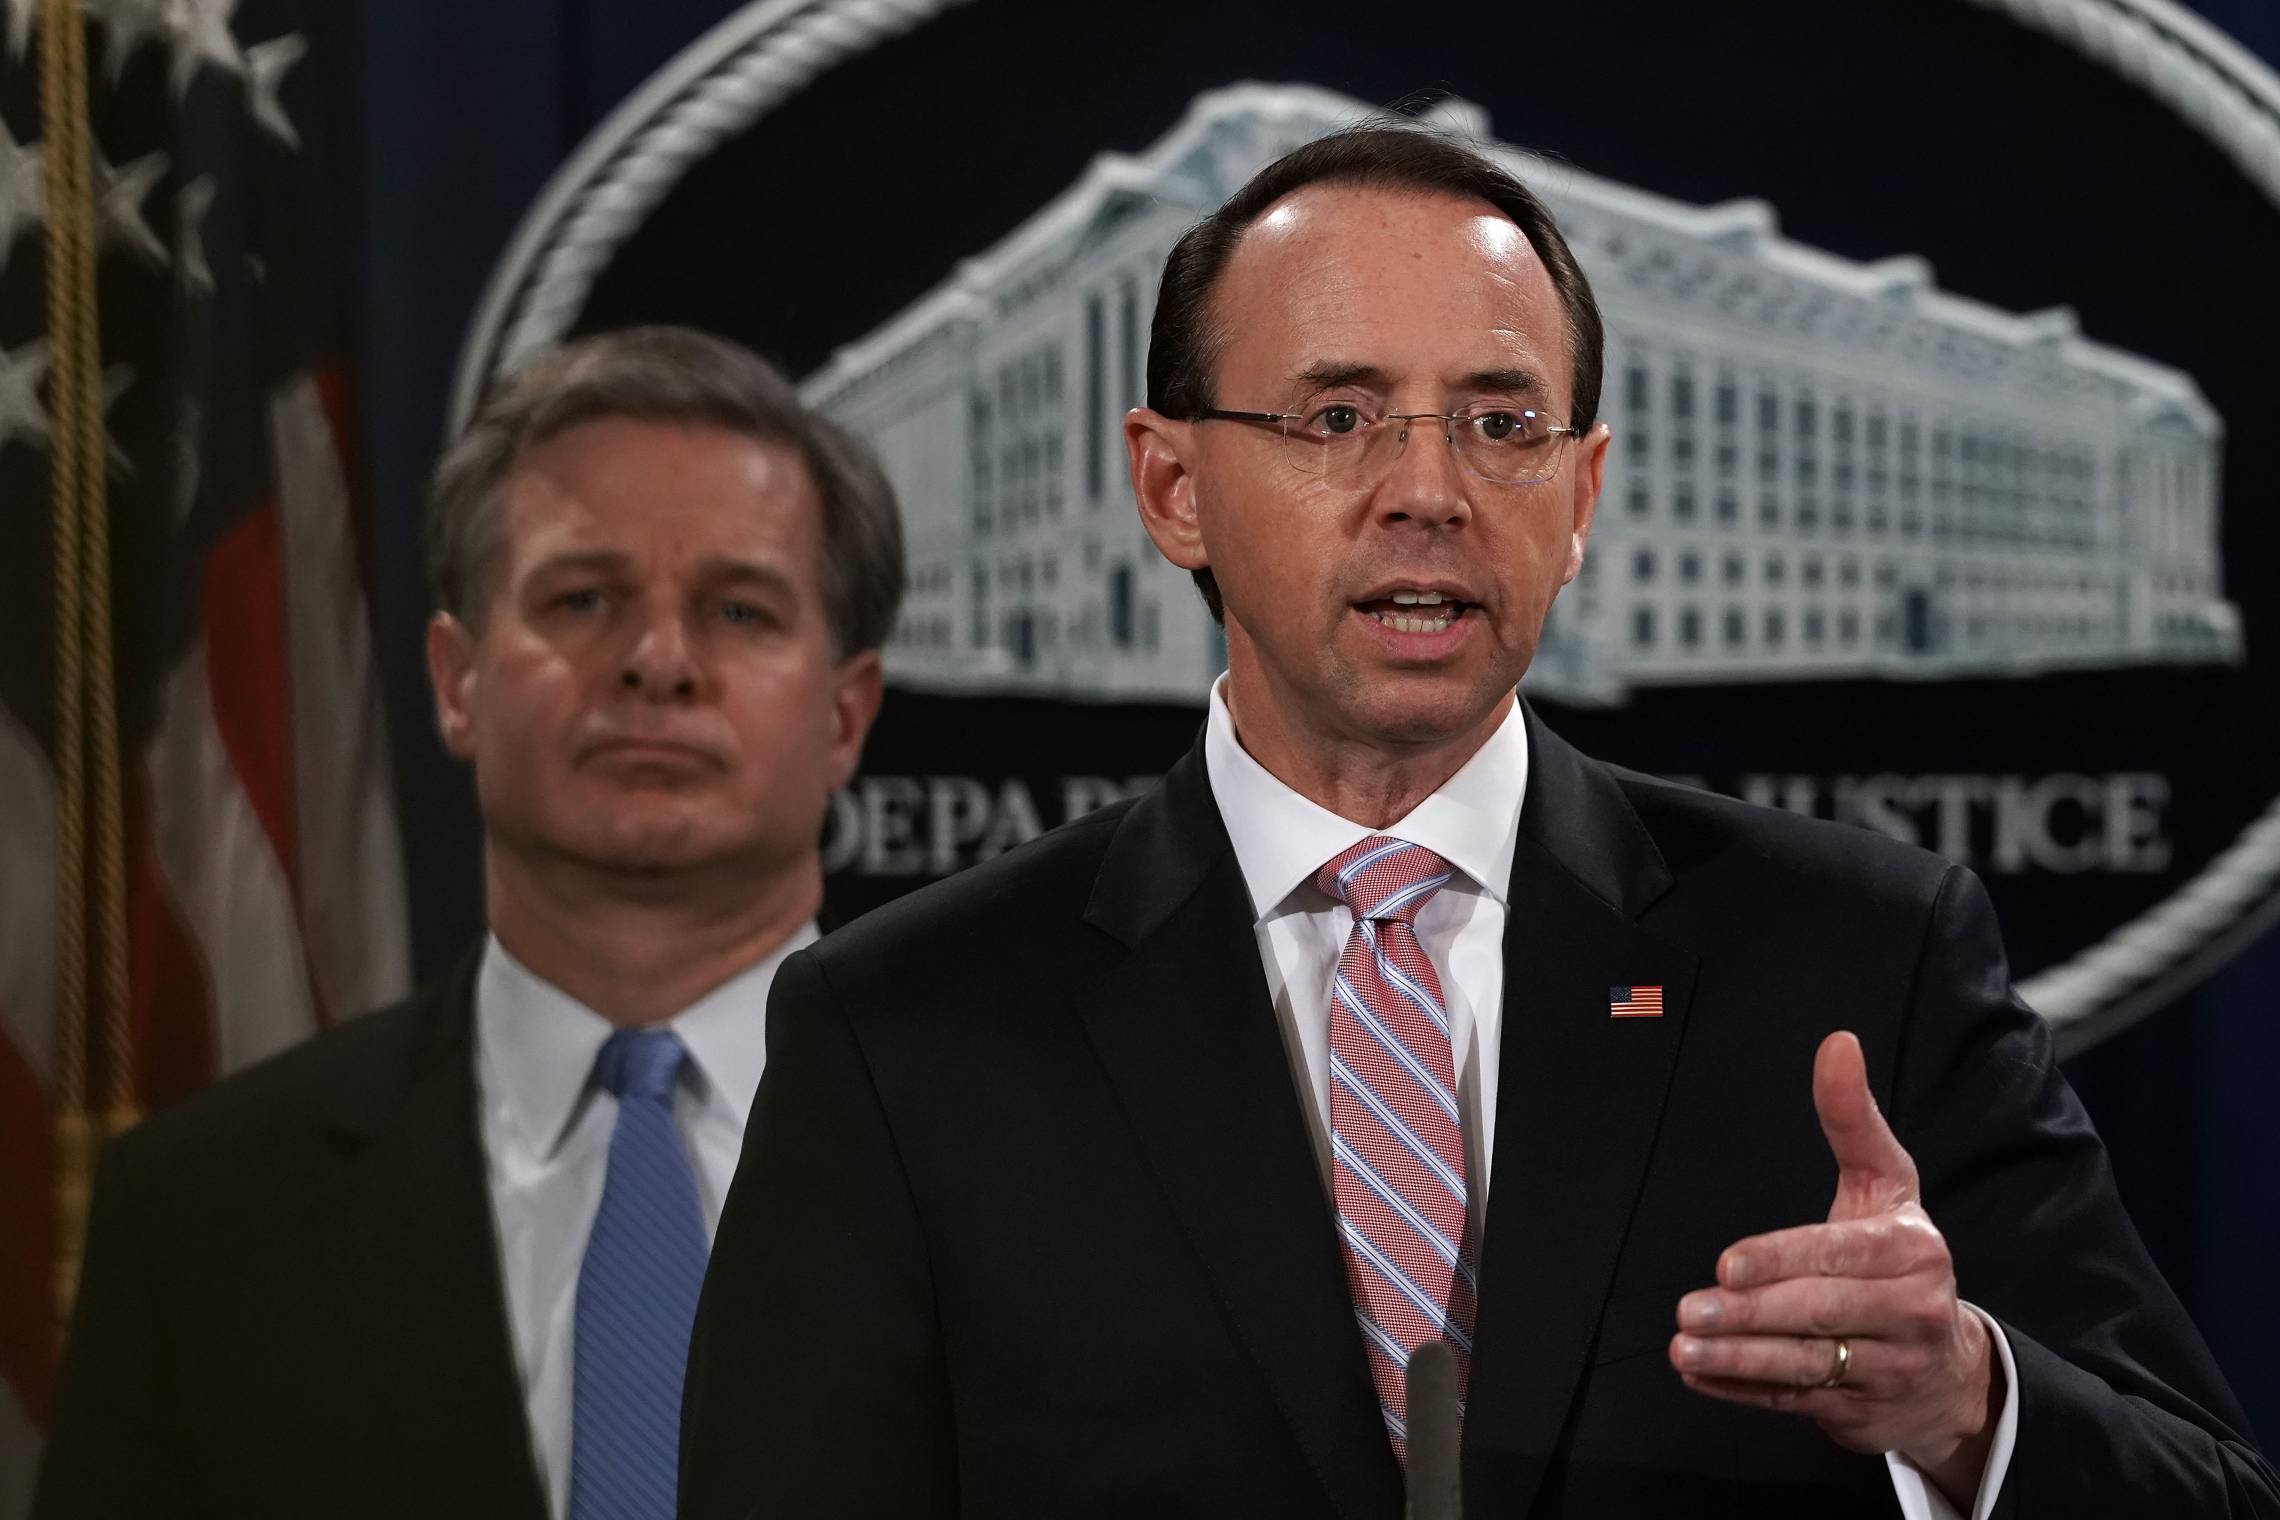 Deputy AG Rod Rosenstein Announces Law Enforcement Action Related To China